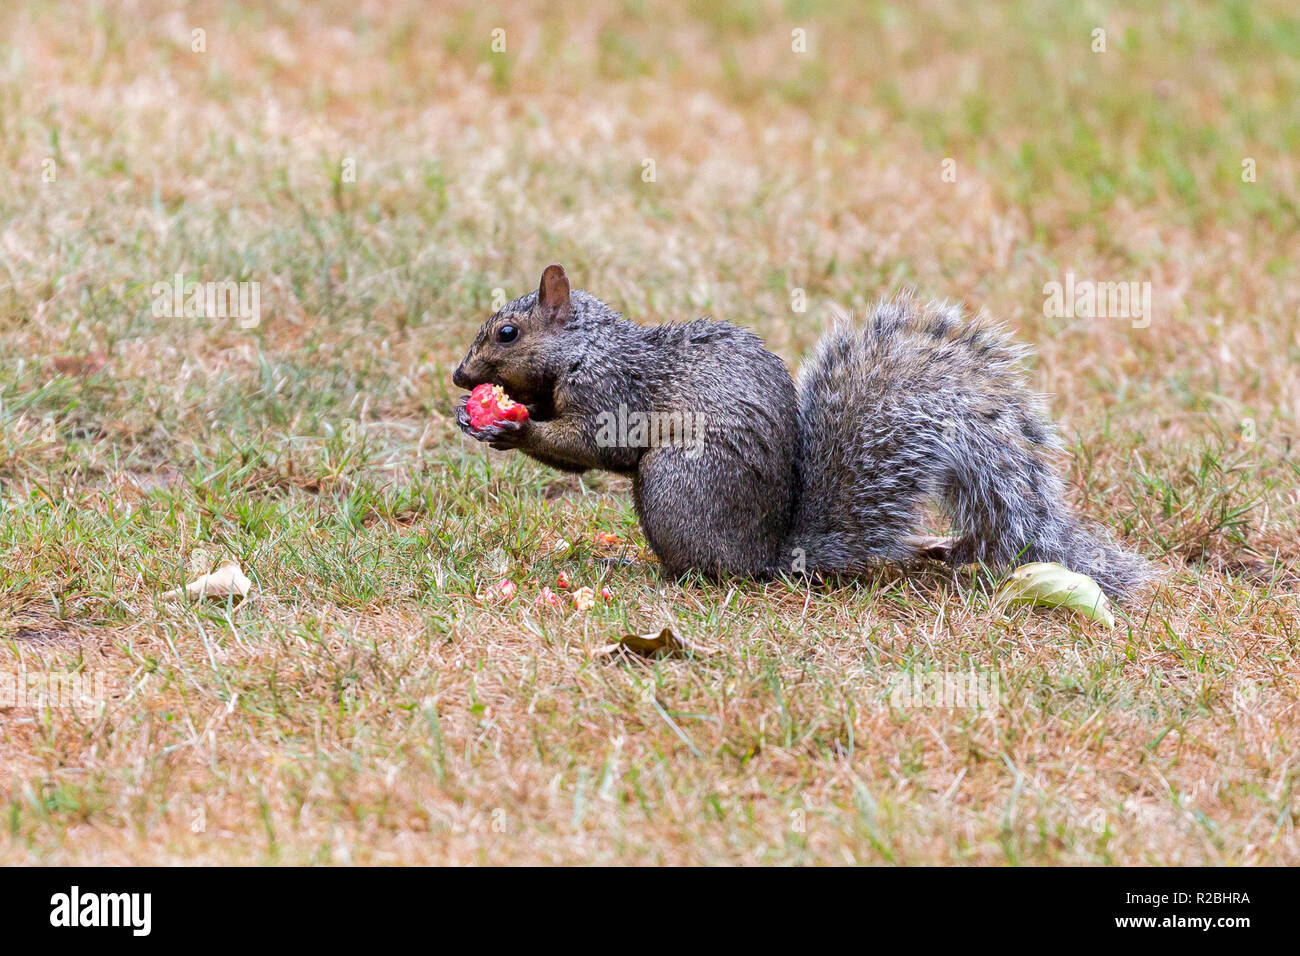 A dark phase Eastern grey squirrel eating on the ground in Stanley Park, Vancouver City, British Columbia, Canada - Stock Image